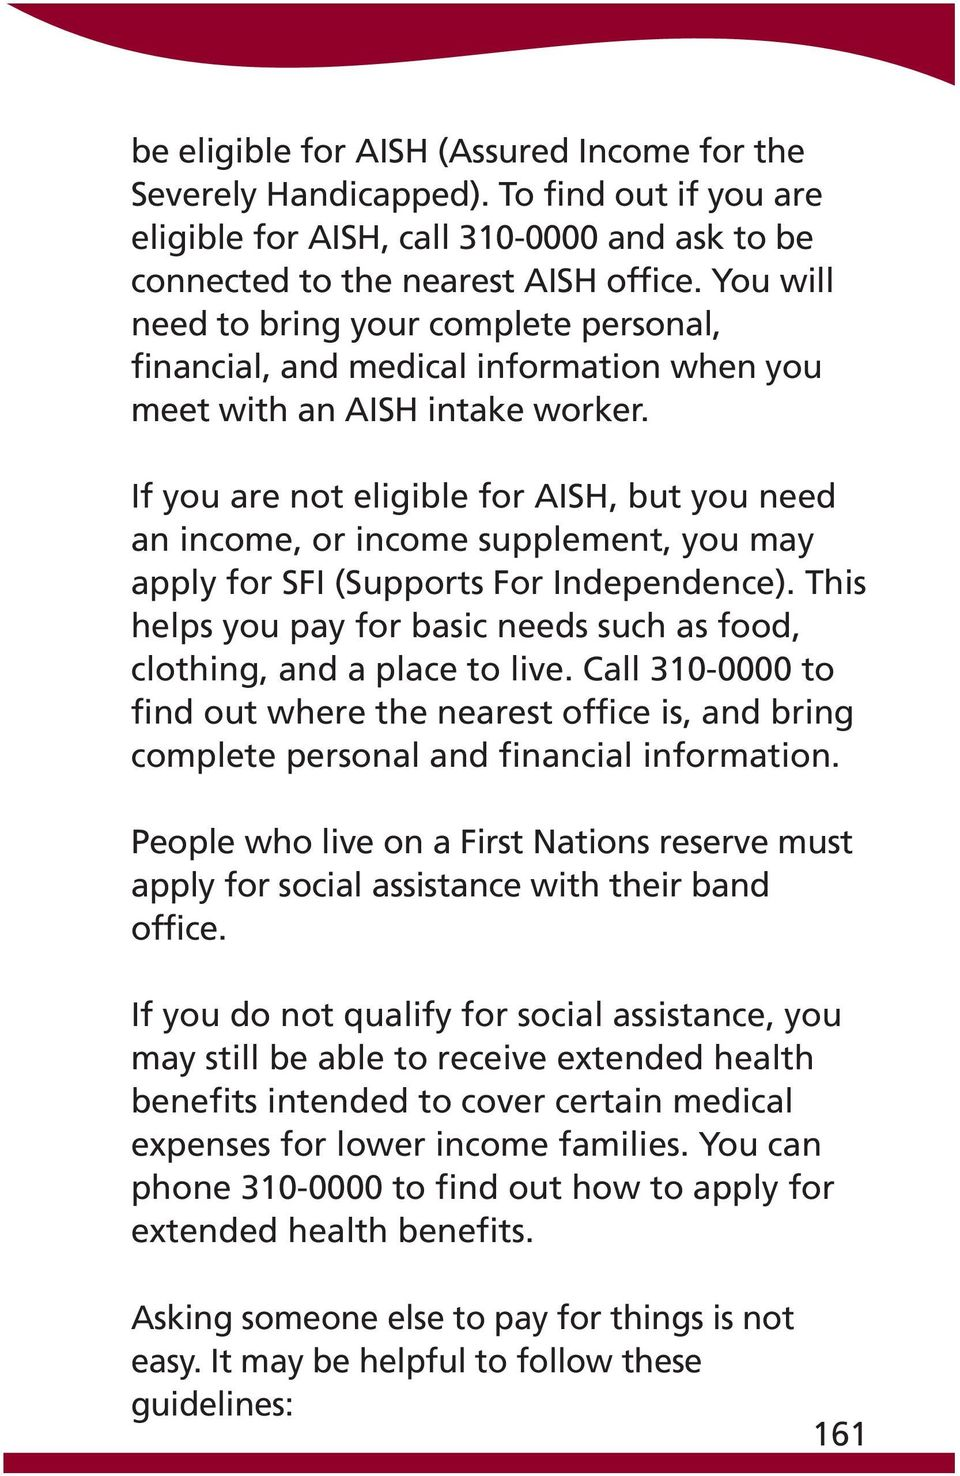 If you are not eligible for AISH, but you need an income, or income supplement, you may apply for SFI (Supports For Independence).